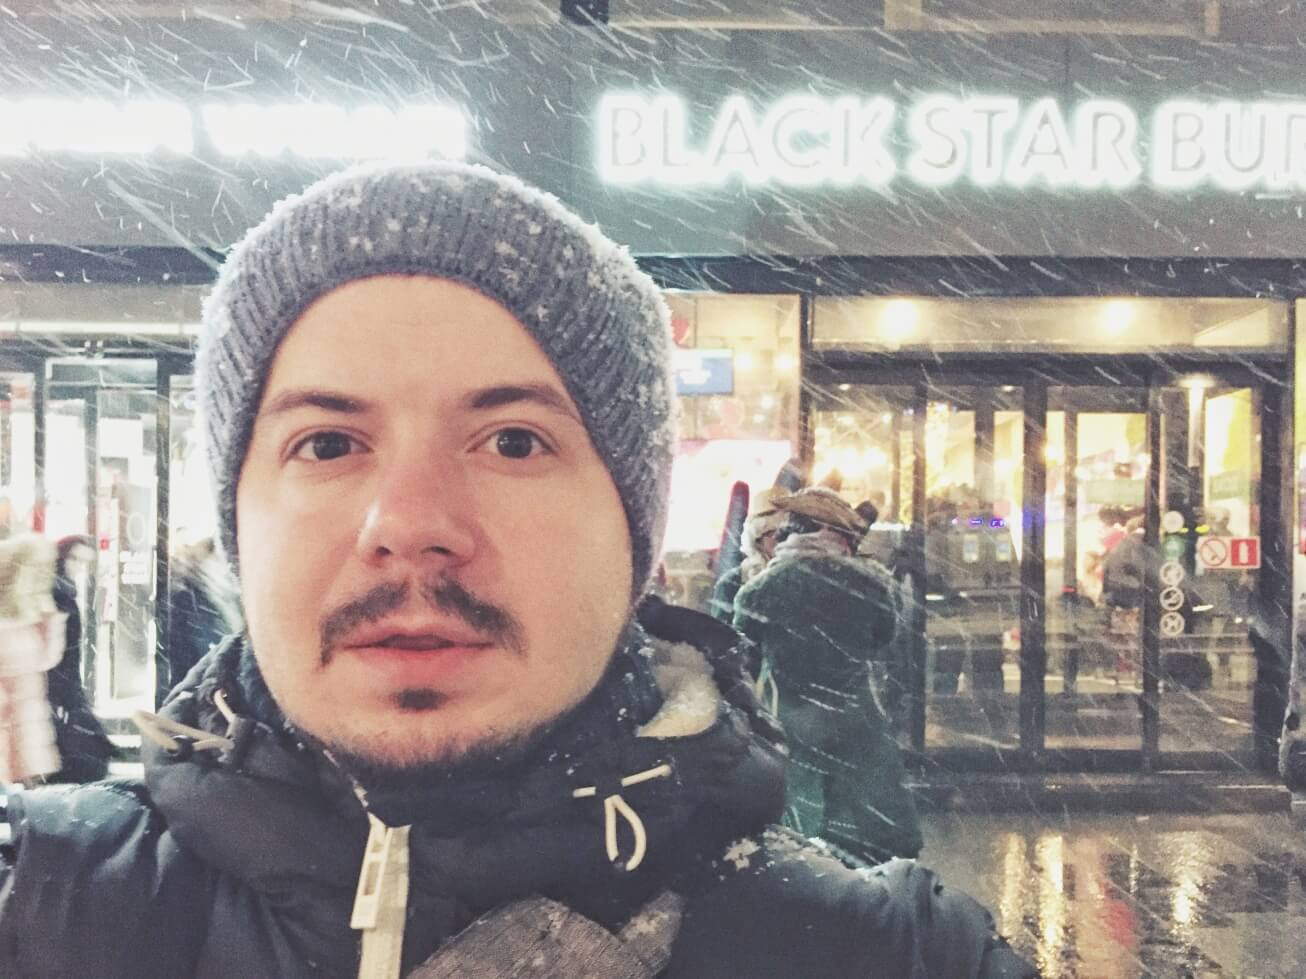 Blackstarburger на Новом Арбате